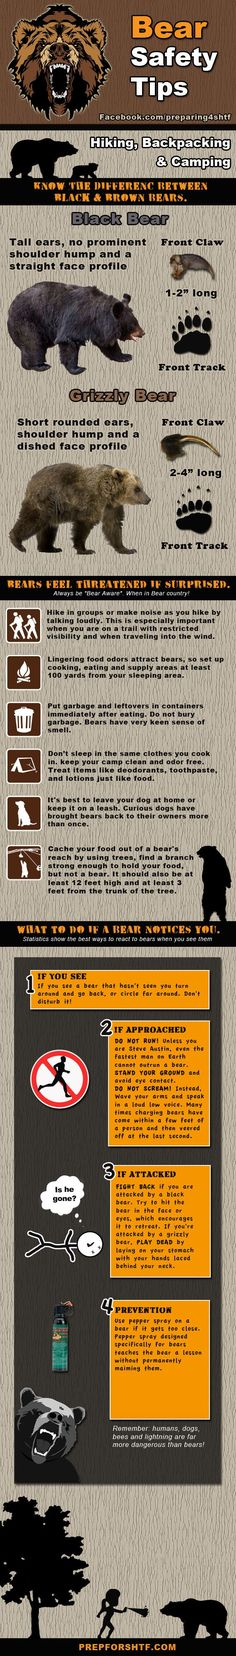 Bear Safety Tips - always good to remember when spending time camping outdoors!